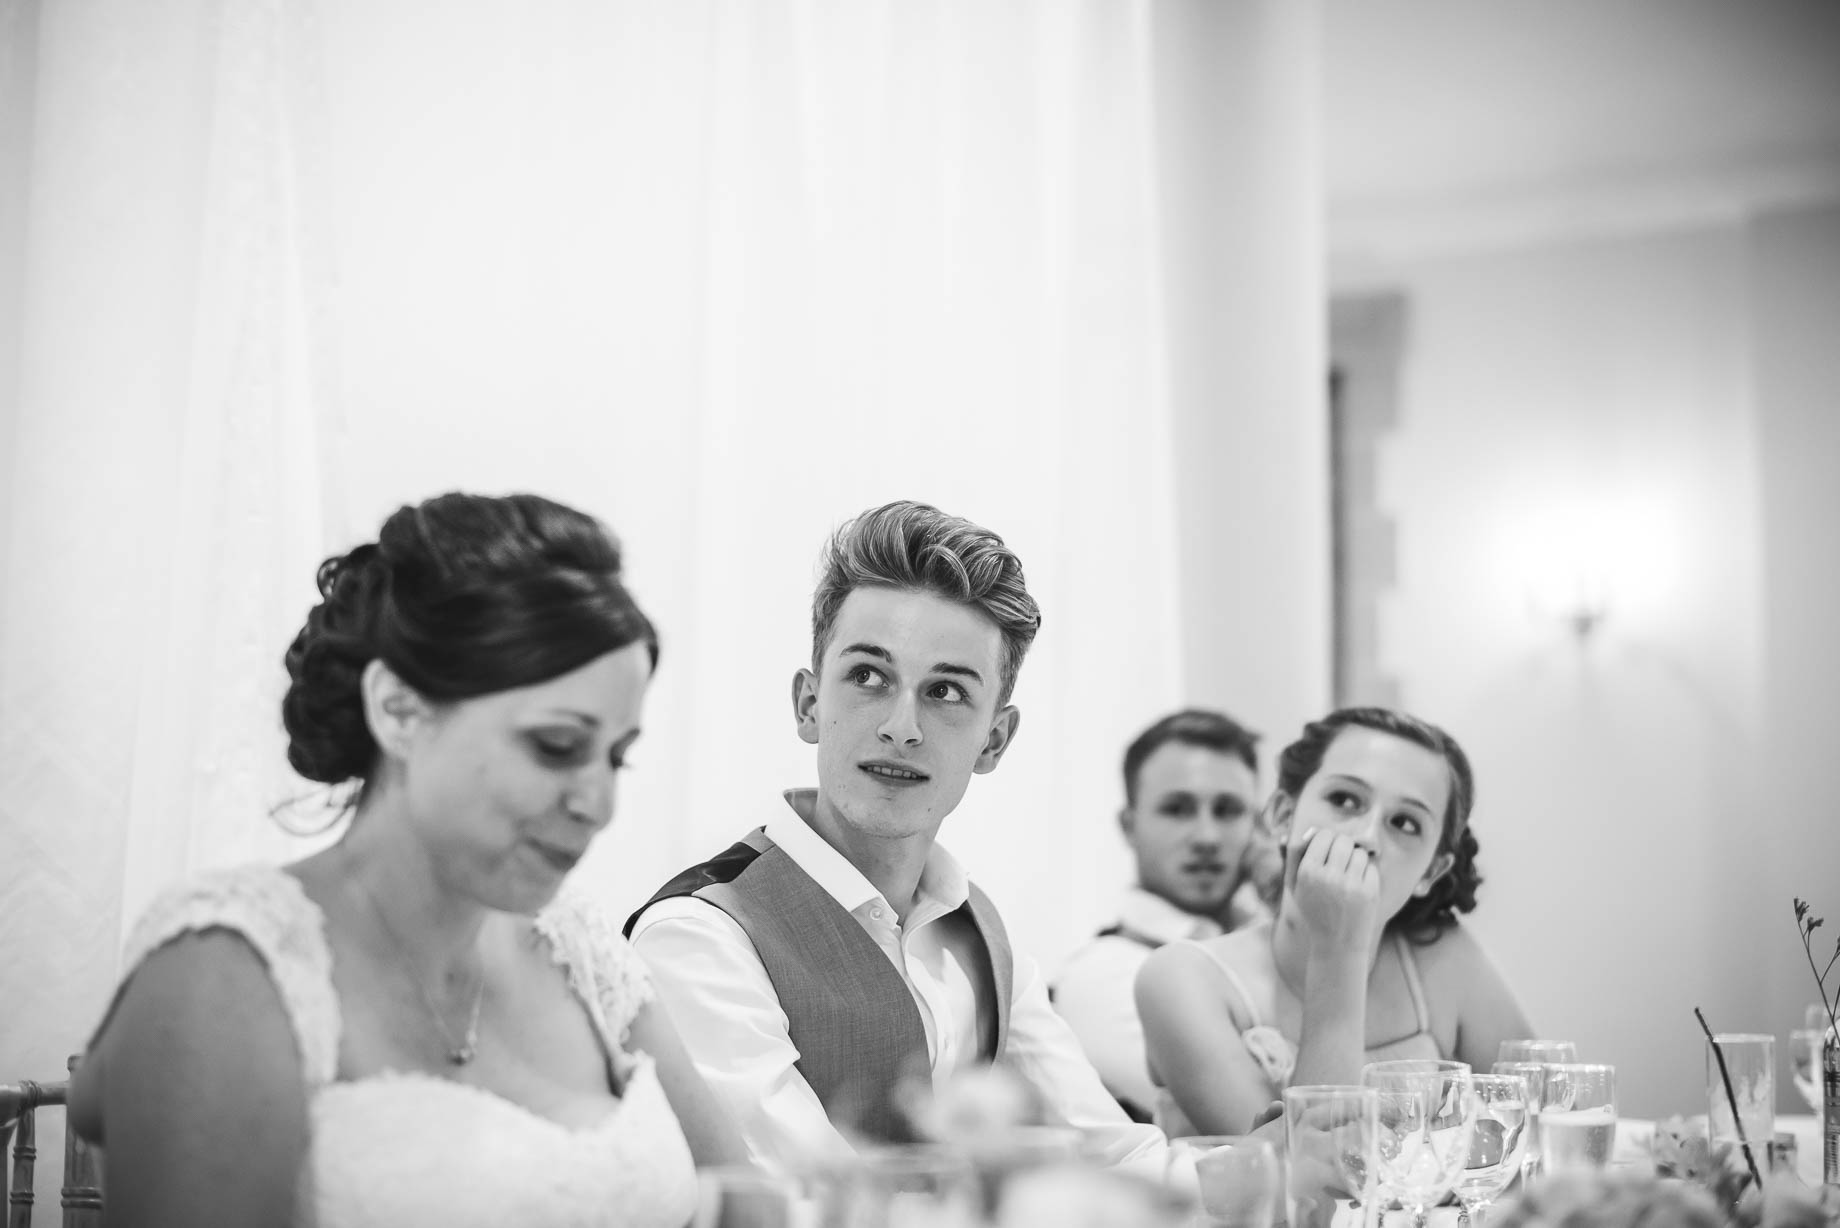 Luton Hoo wedding photography by Guy Collier Photography - Lauren and Gem (134 of 178)